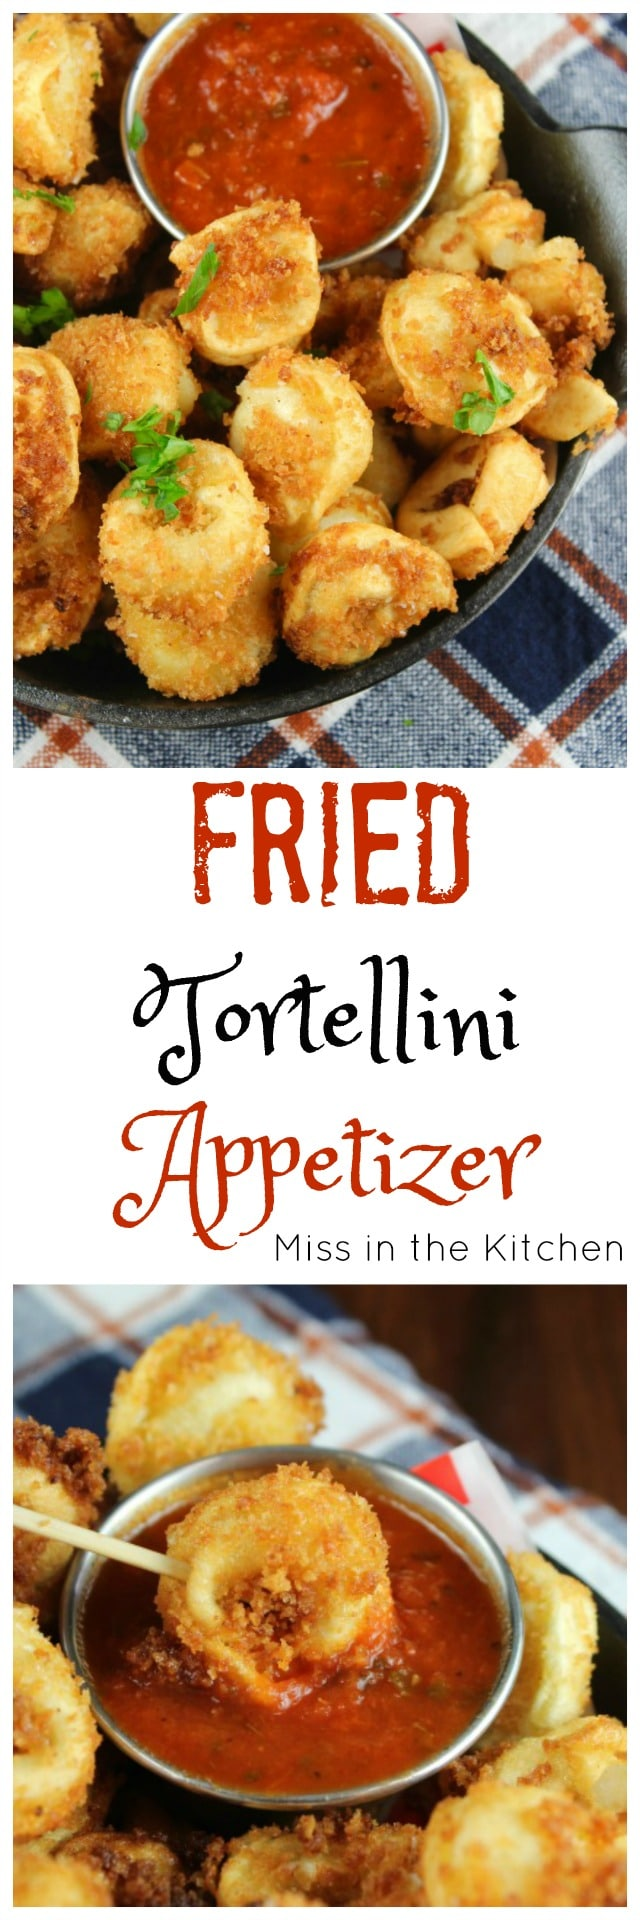 Fried Tortellini Appetizer Recipe found at MissintheKitchen.com